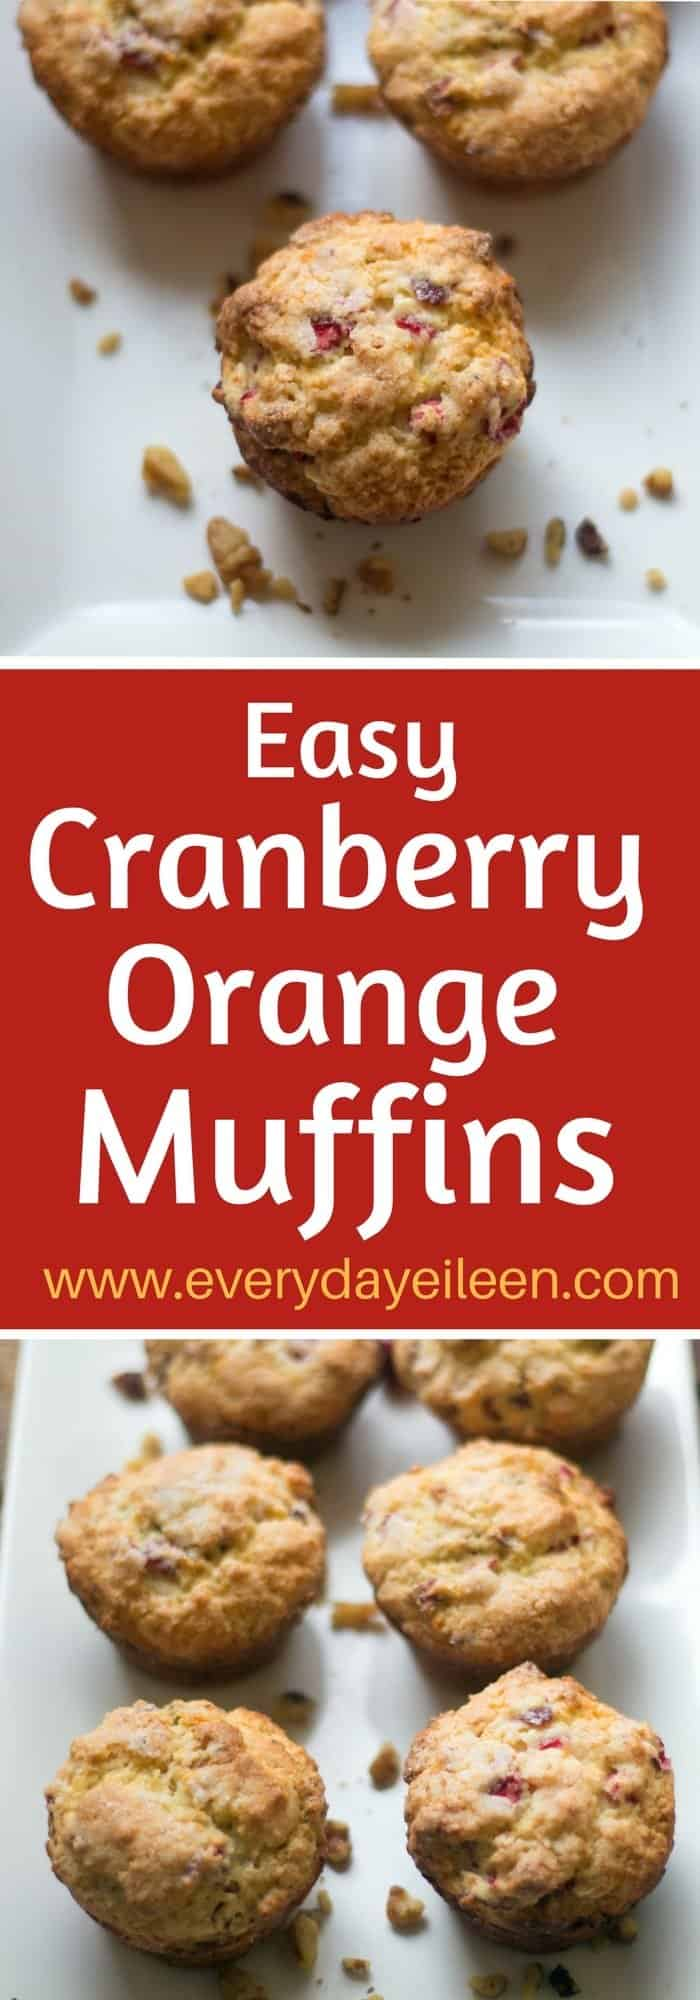 easy cranberry orange muffins